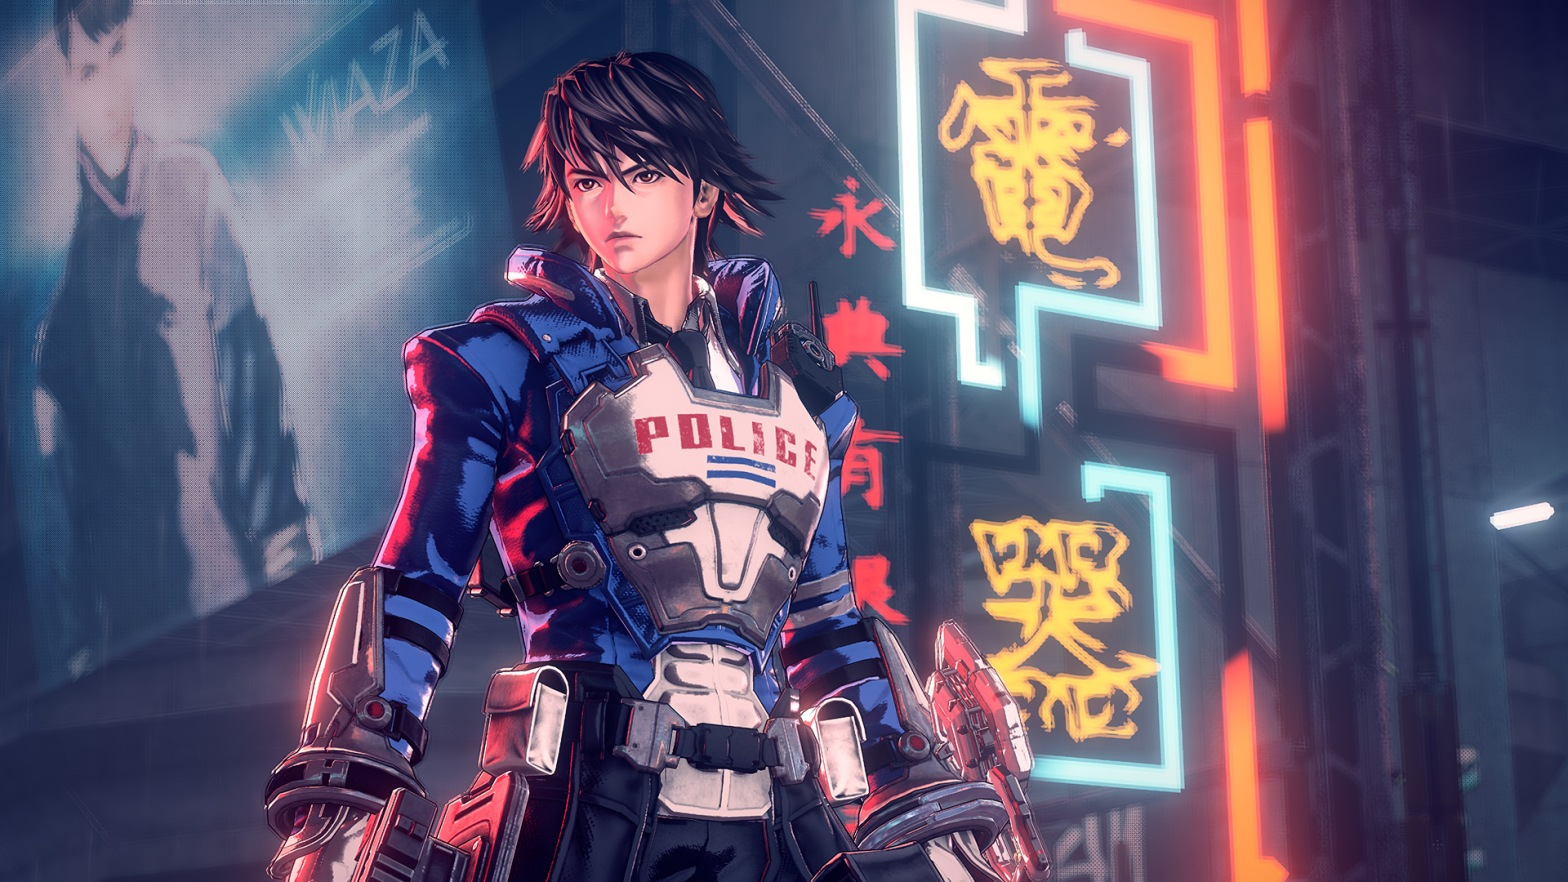 Astral Chain,Gaming,Games,Online Games,Video Games